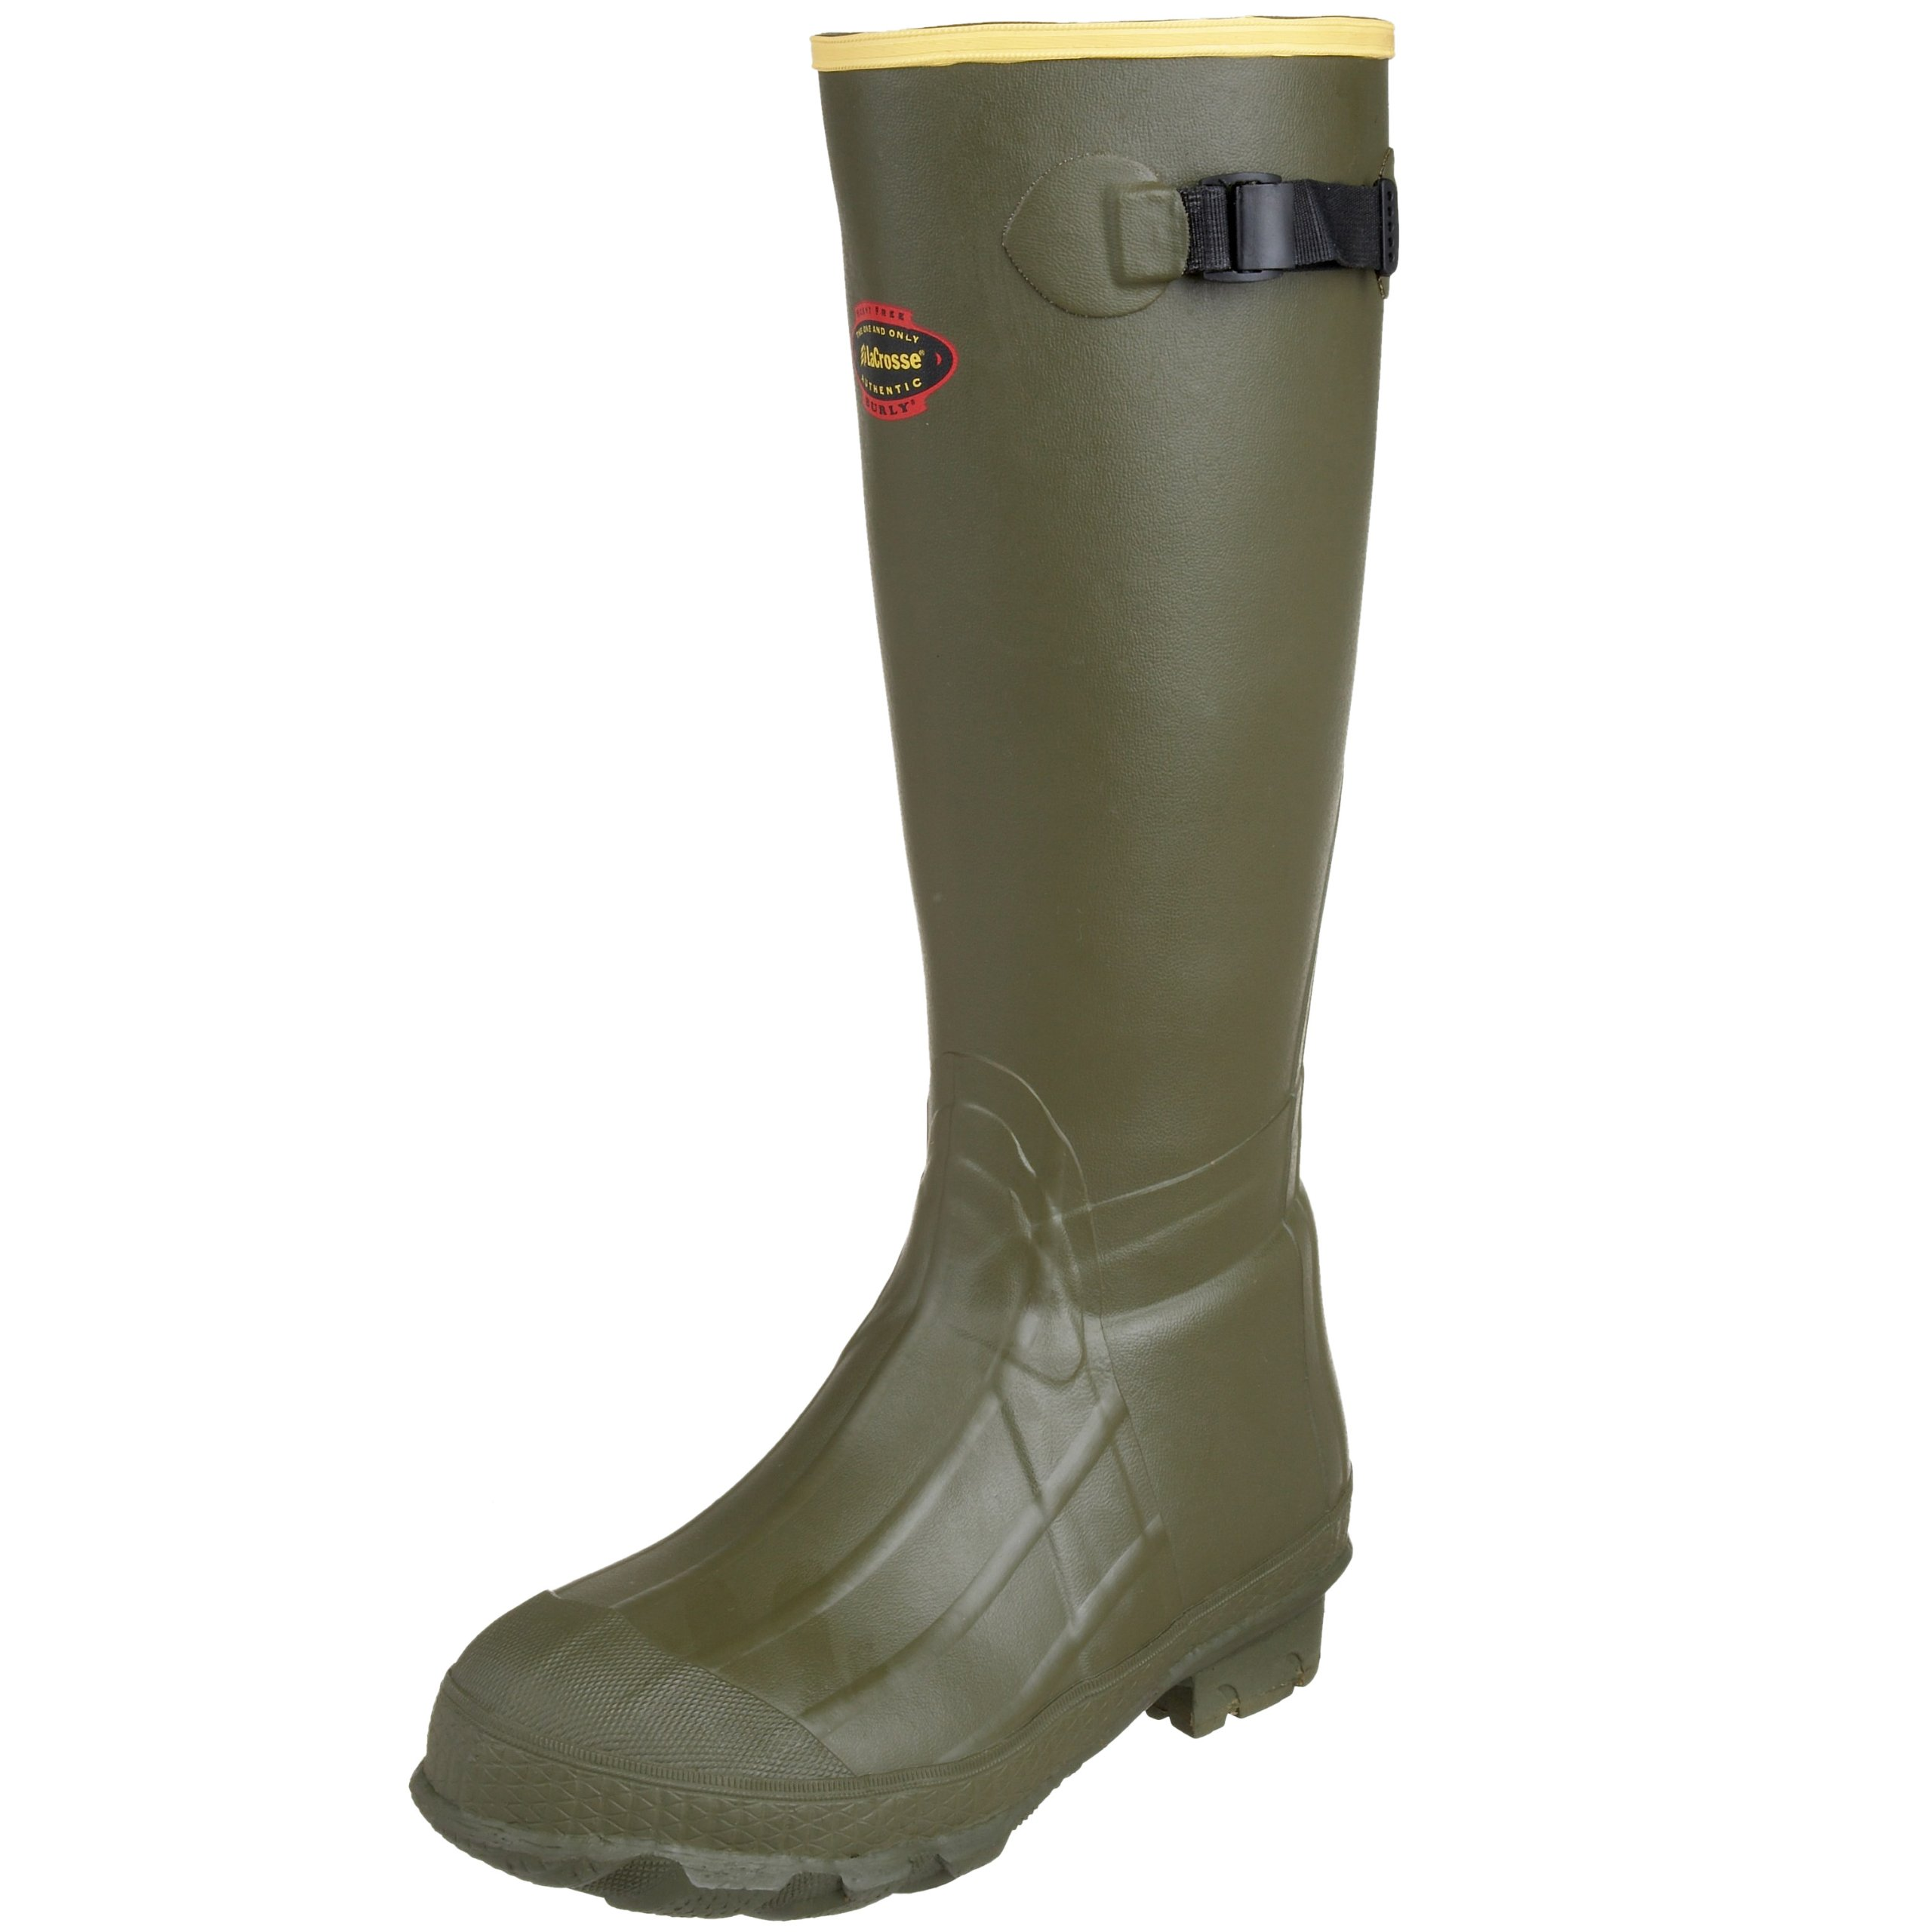 LaCrosse Men's 18'' Burly Classic Hunting Boot,OD Green,5 M US by Lacrosse (Image #1)